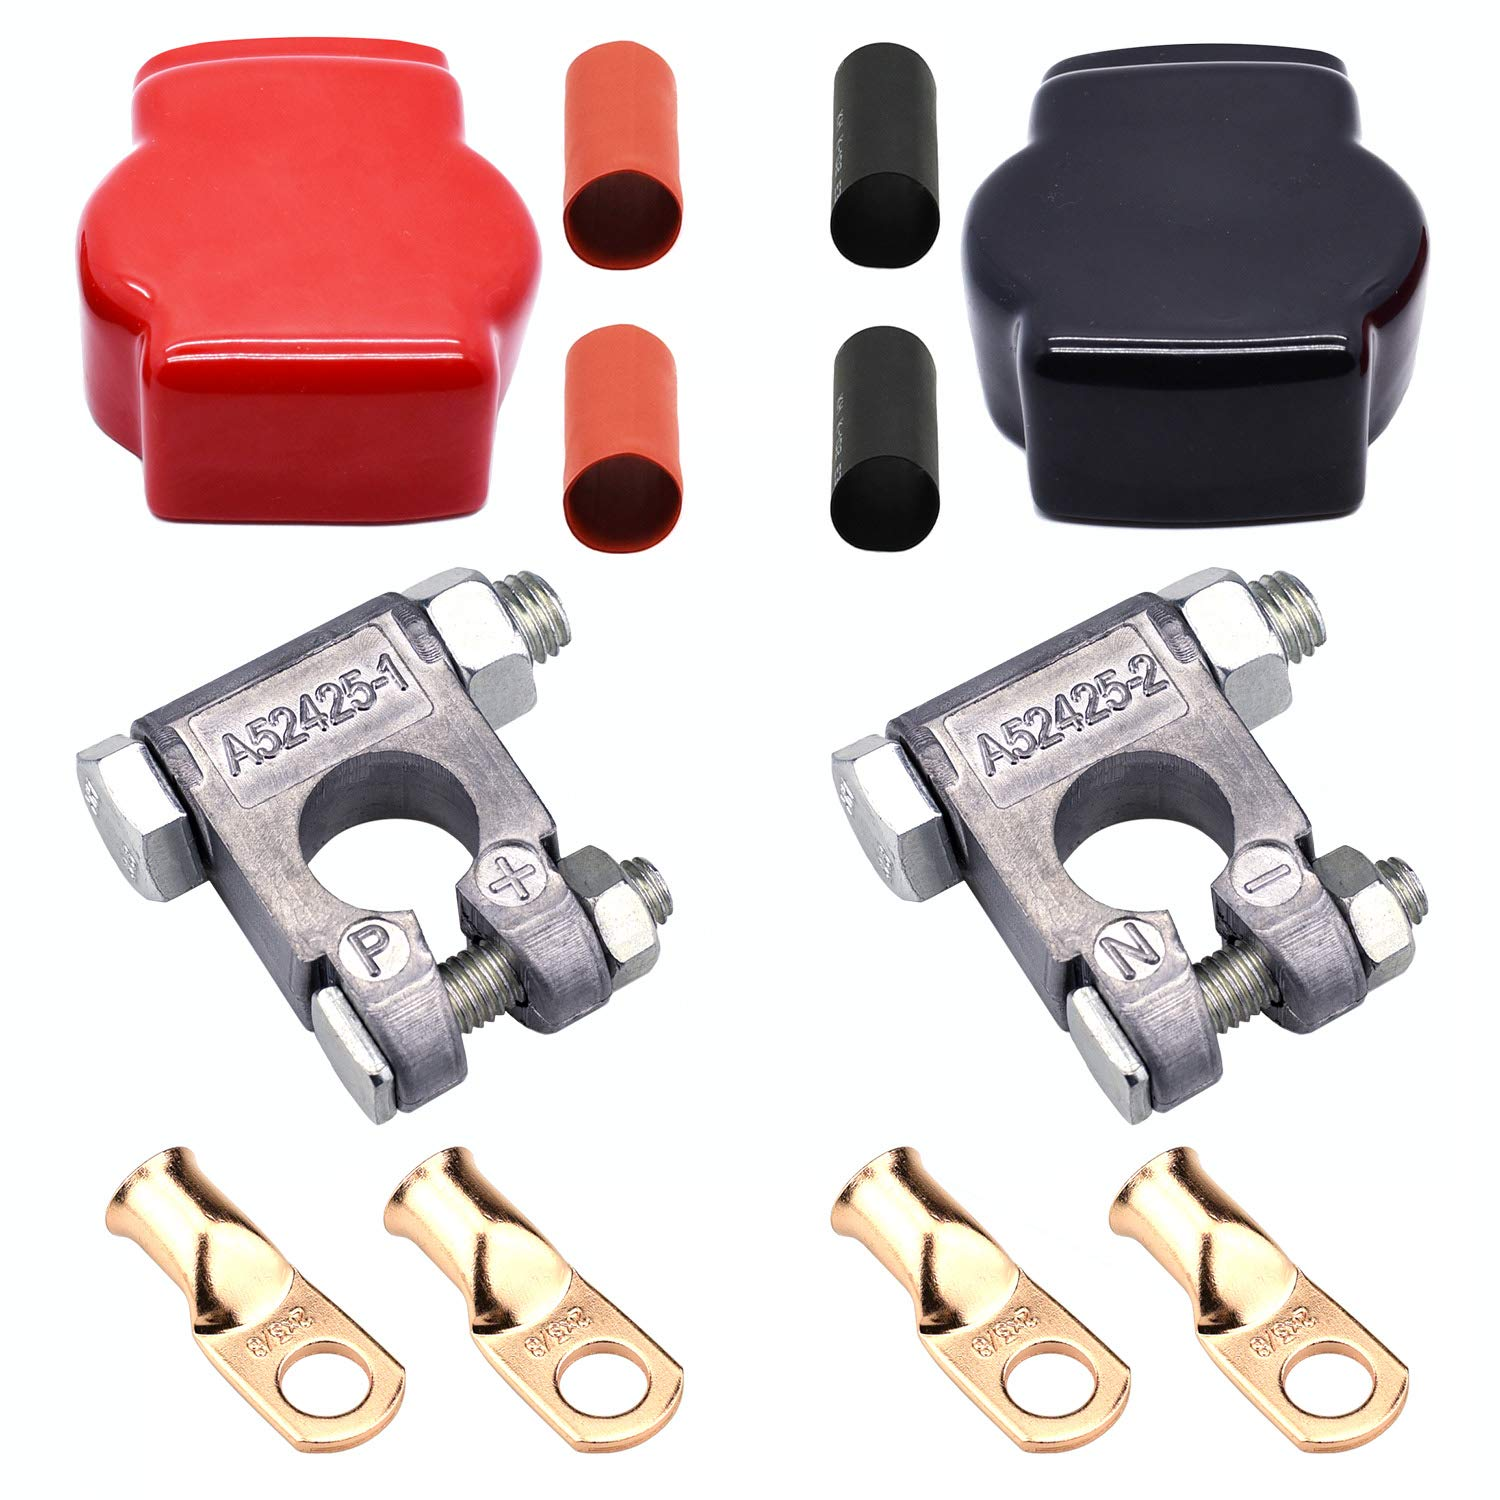 Cllena Military Style Battery Terminal Top Post Kit for Car Auto Truck Rv Camper Marine Boat by Cllena